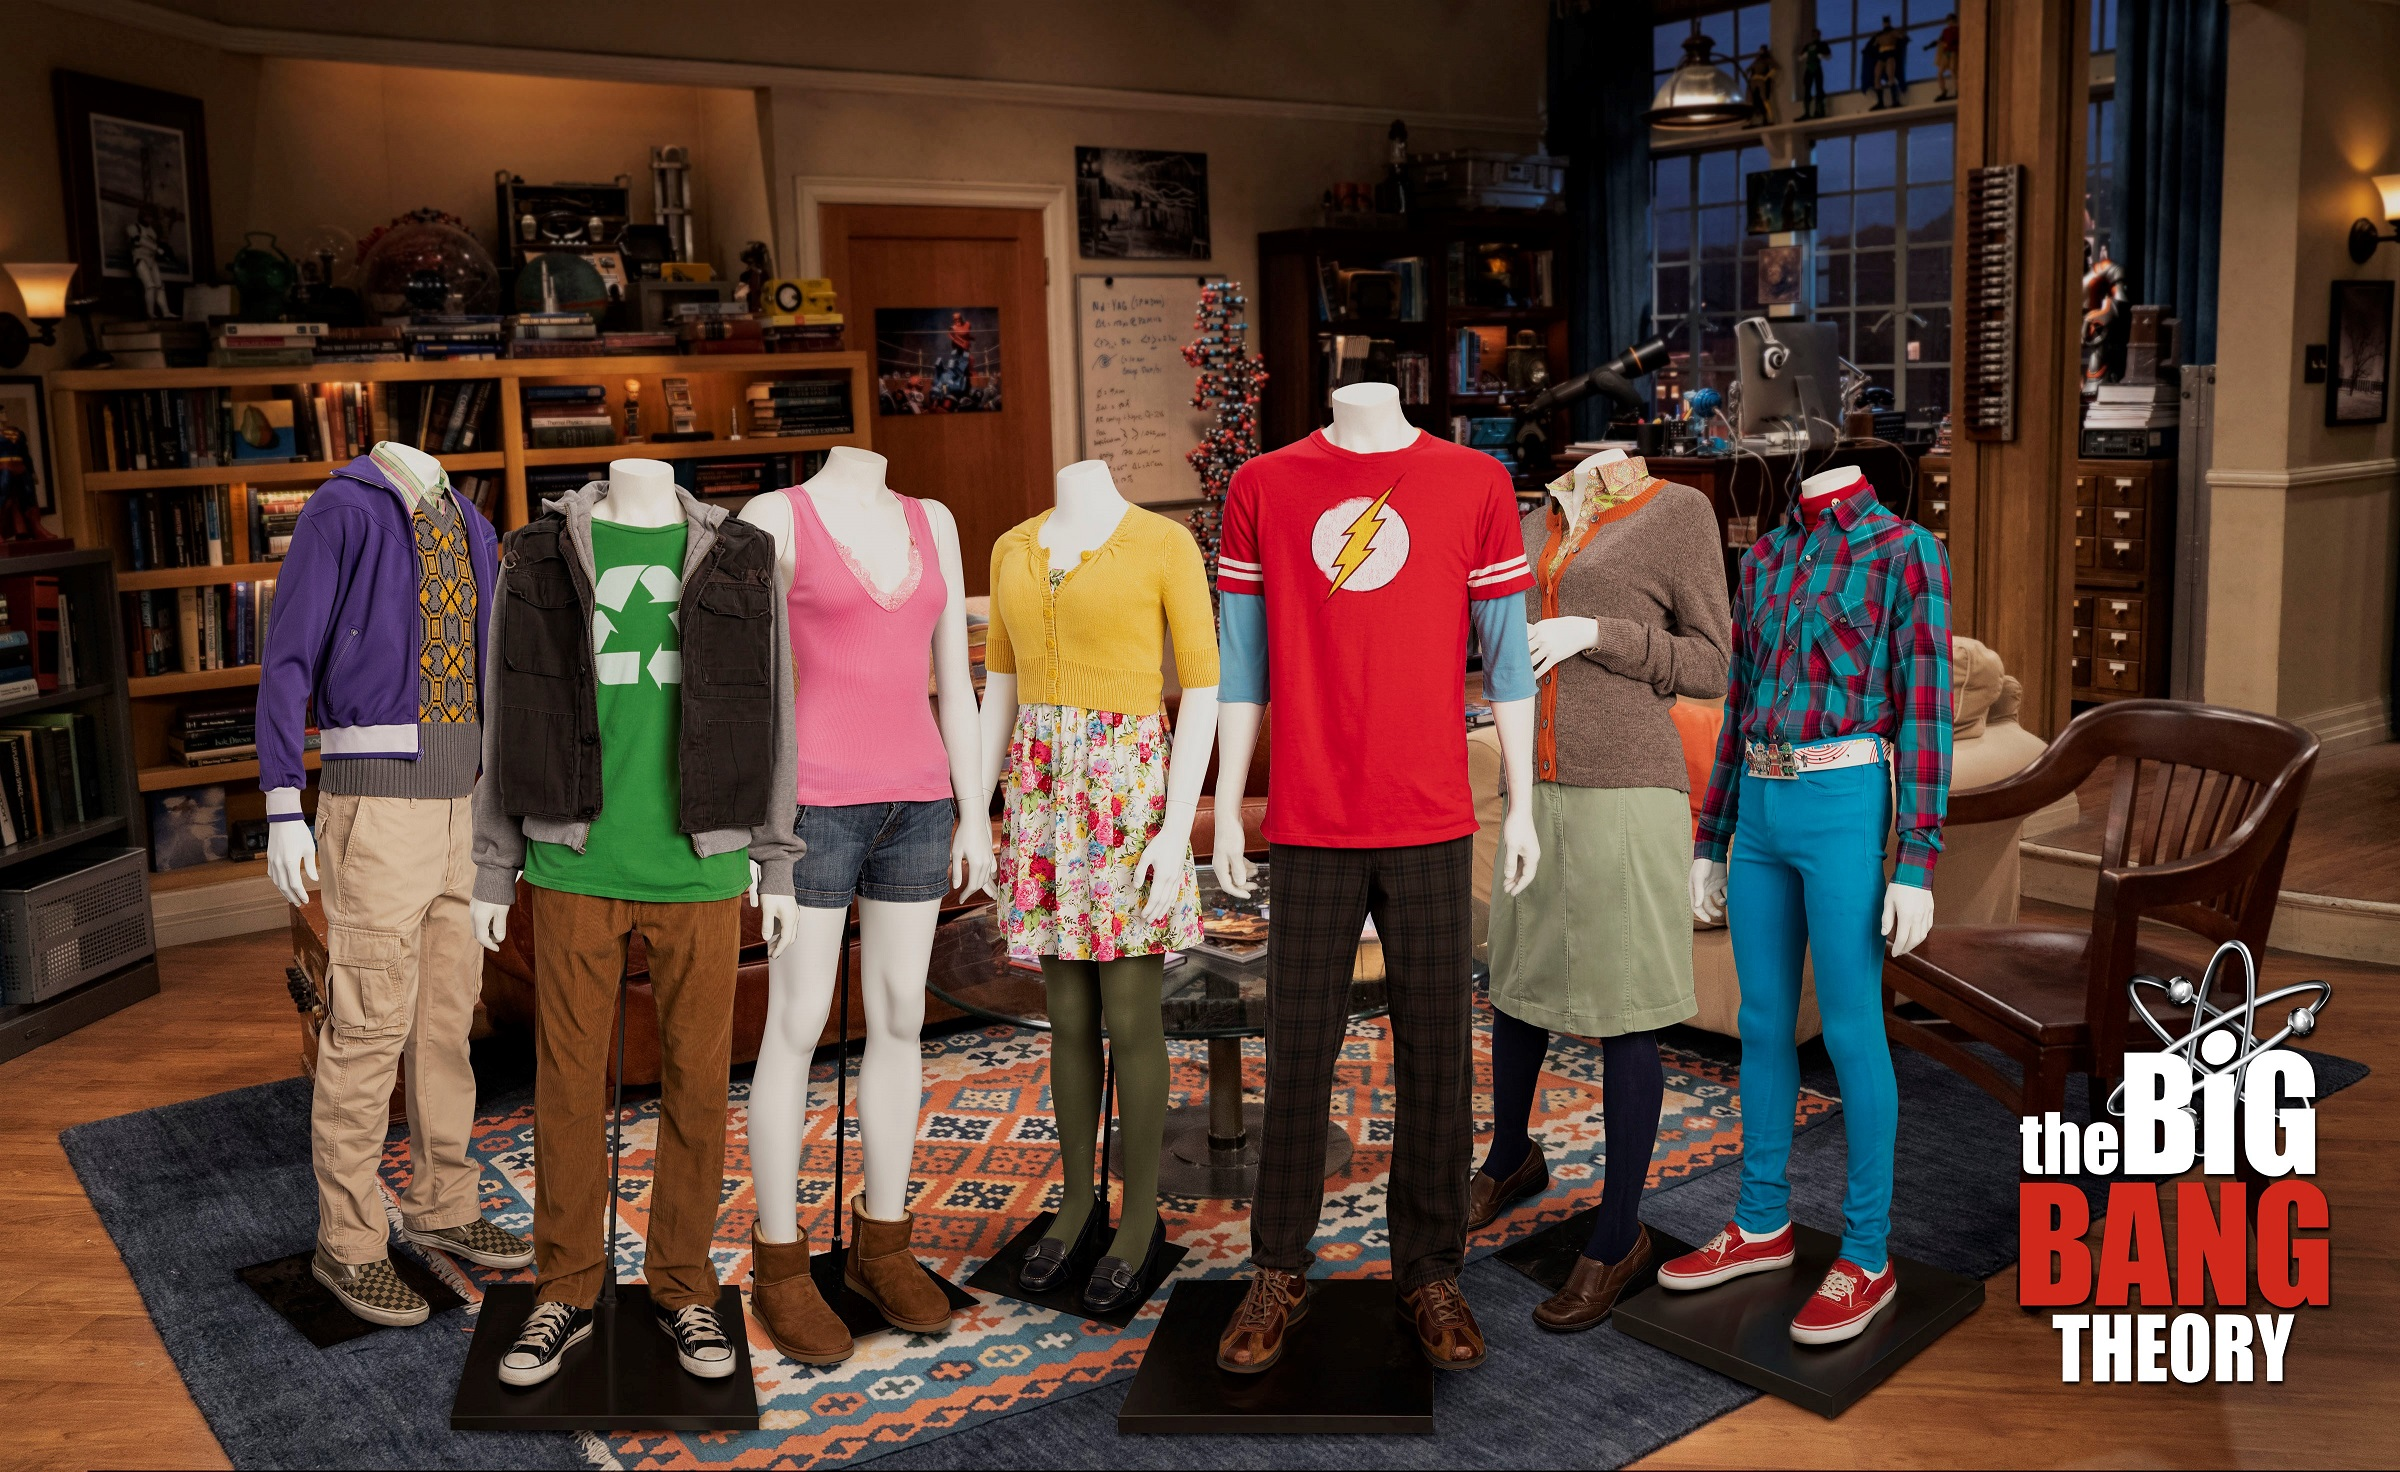 Mannequins wearing costumes/streetwear on a television set